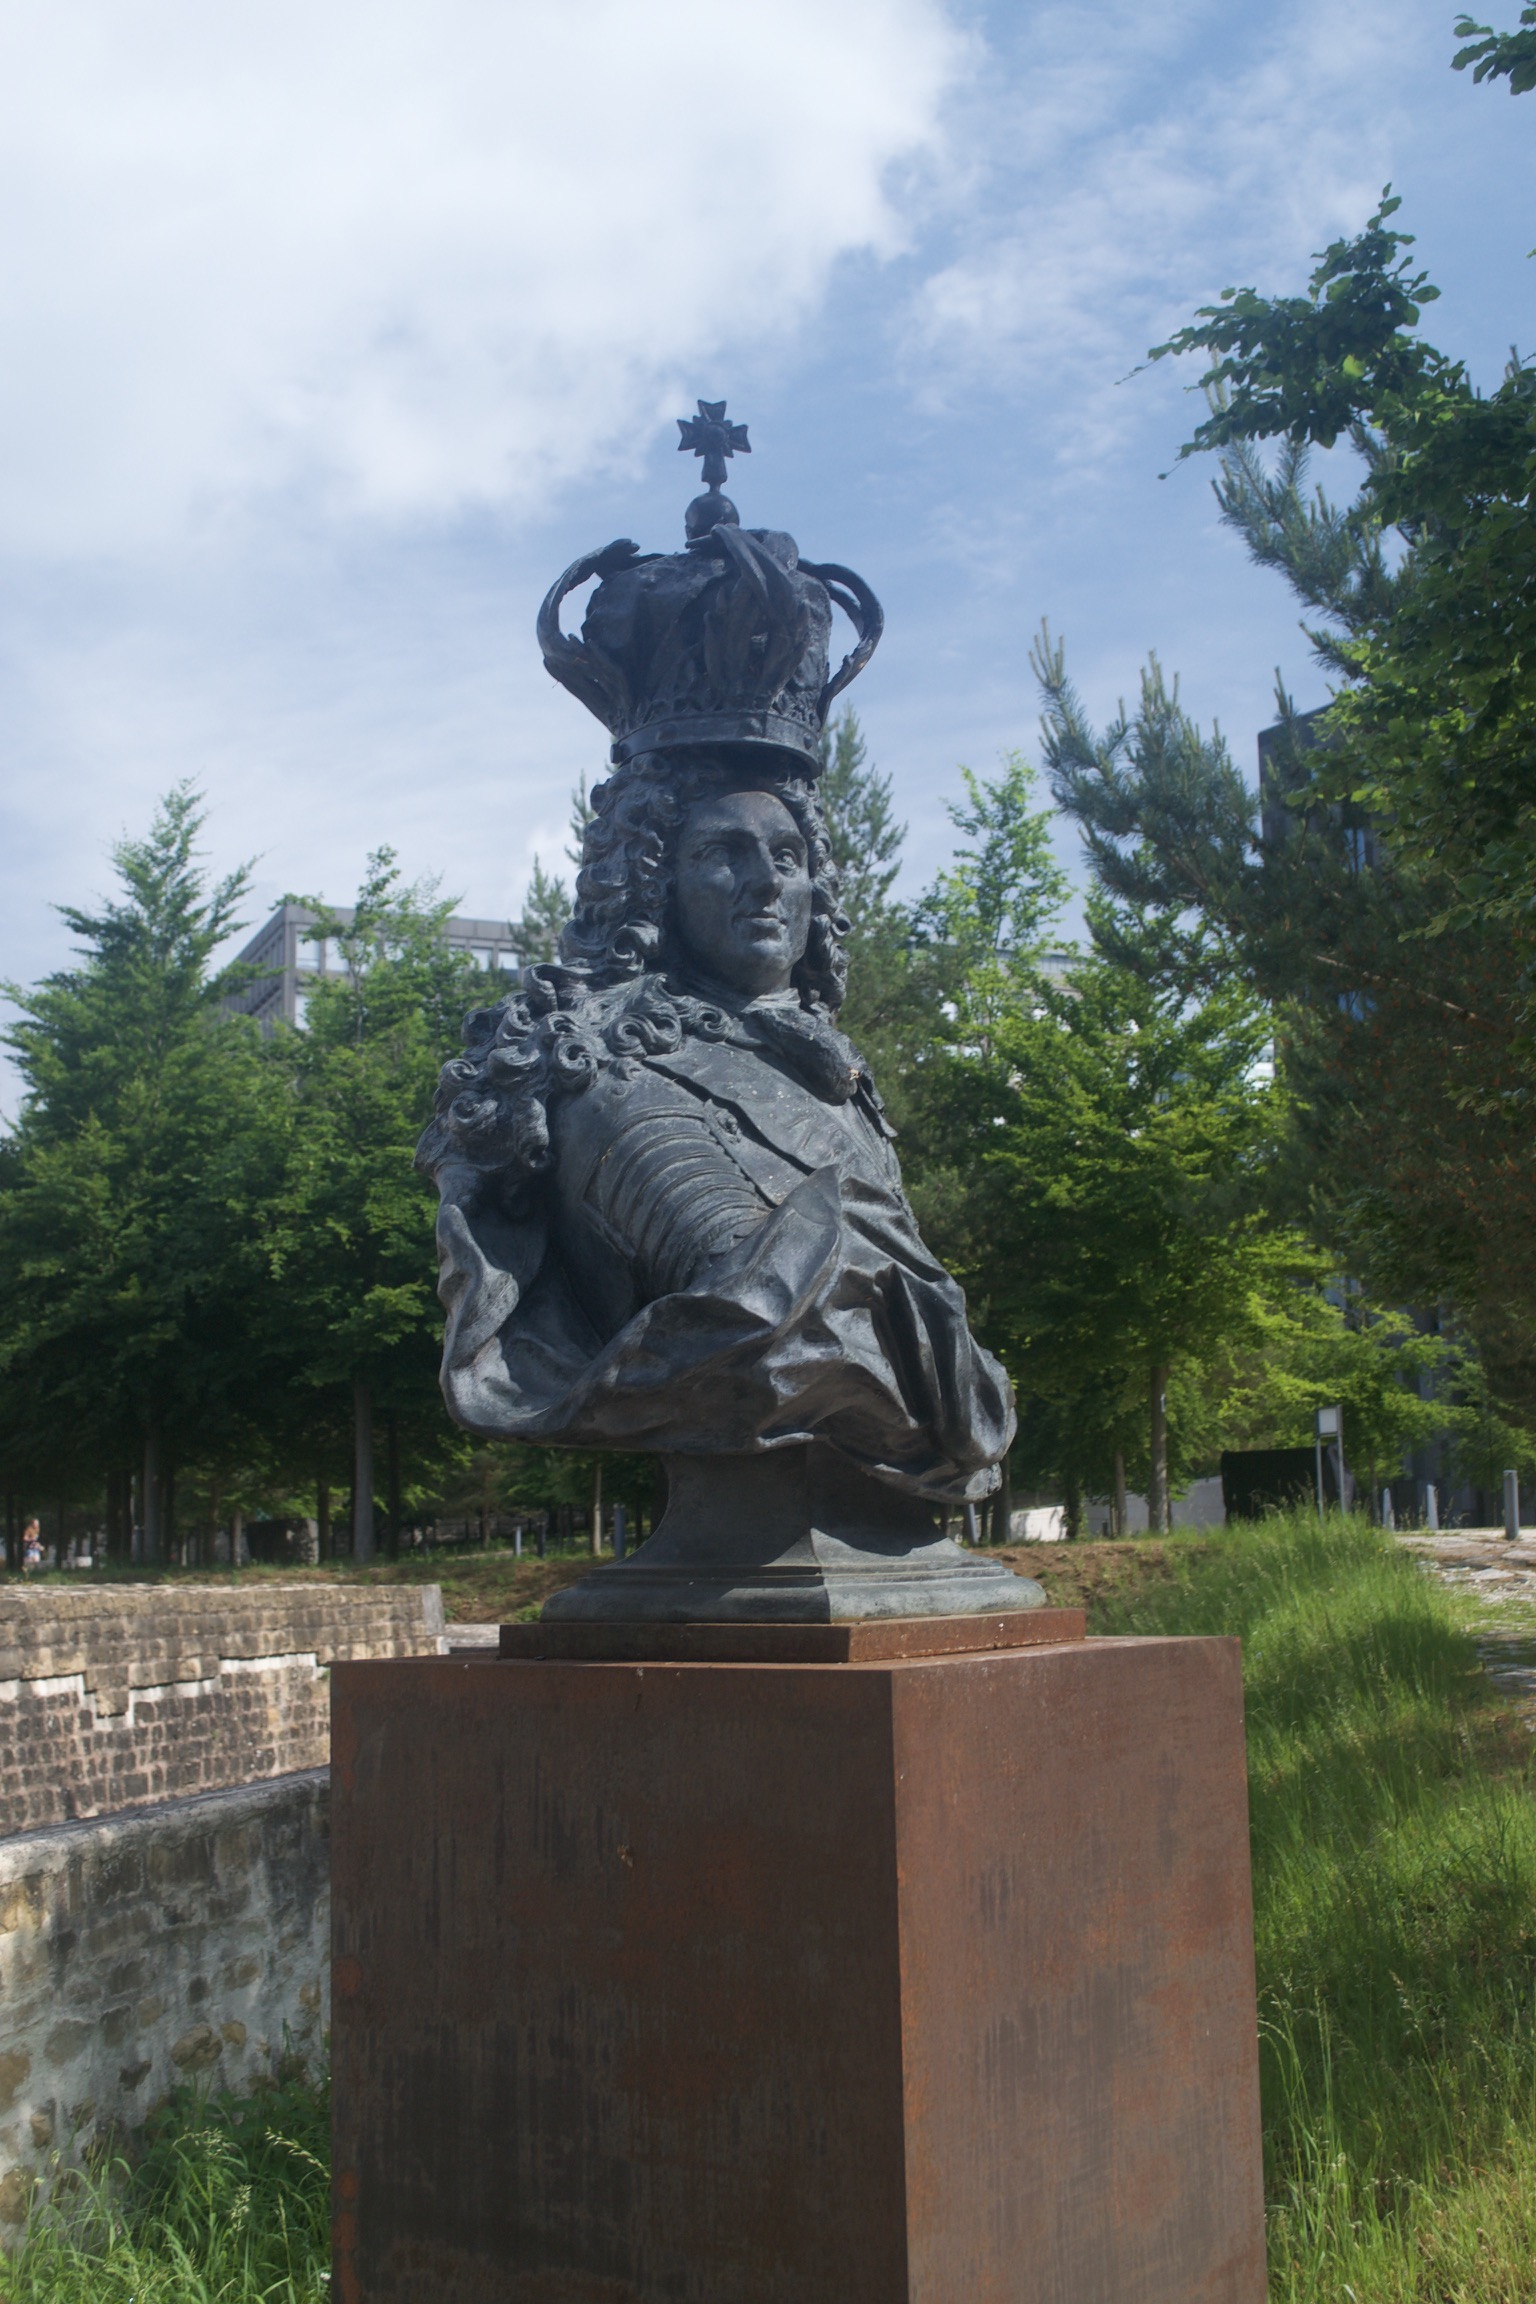 A bronze bust atop a rusted plinth.  A crown sits above the subject's hair, rather than on his head.